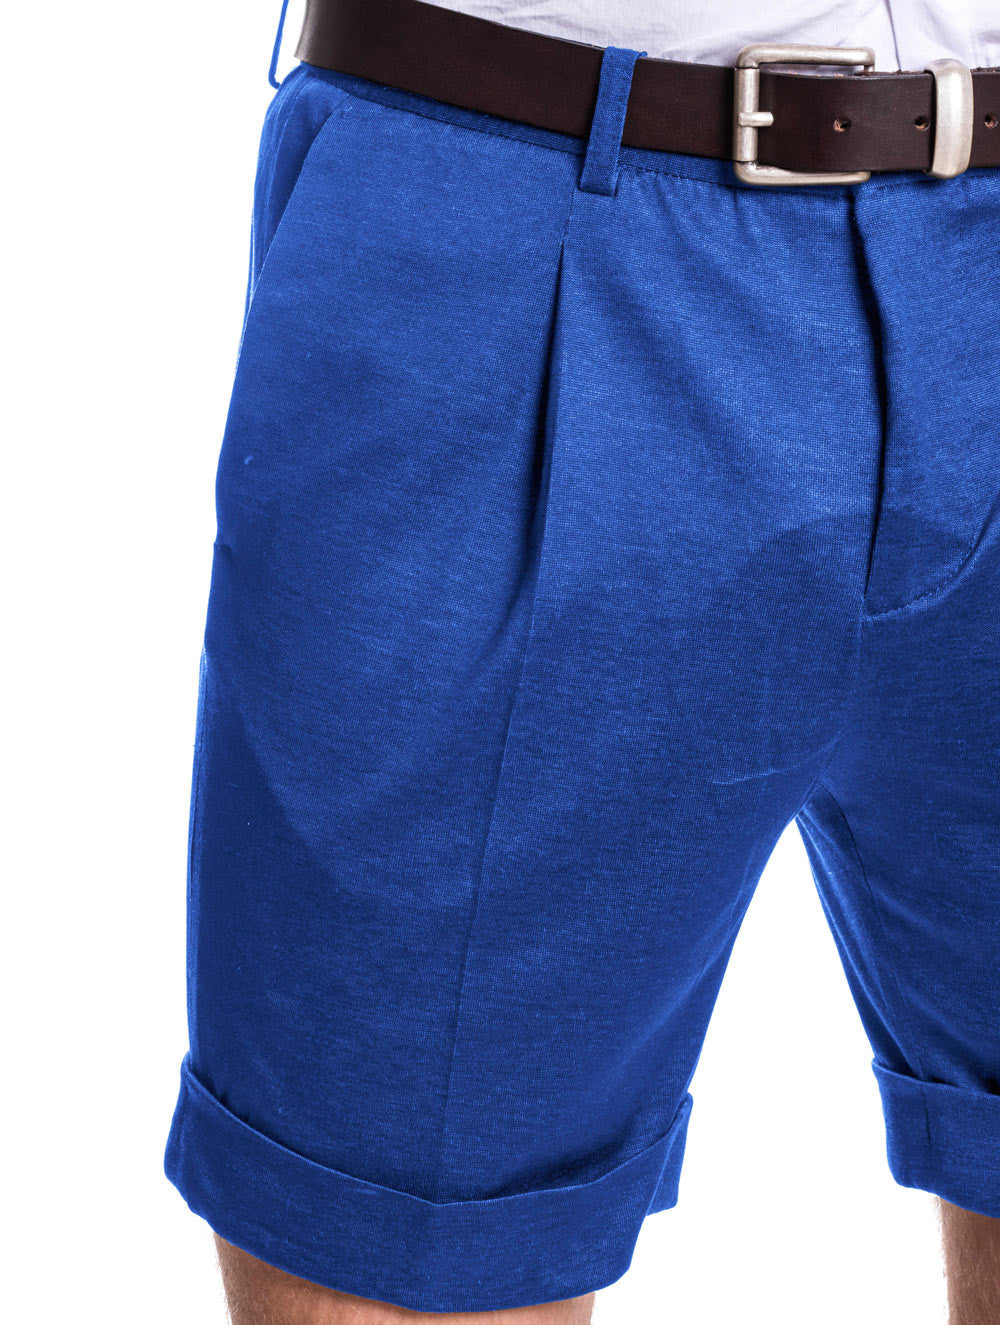 BLUE ROYAL VANISE SHORTS